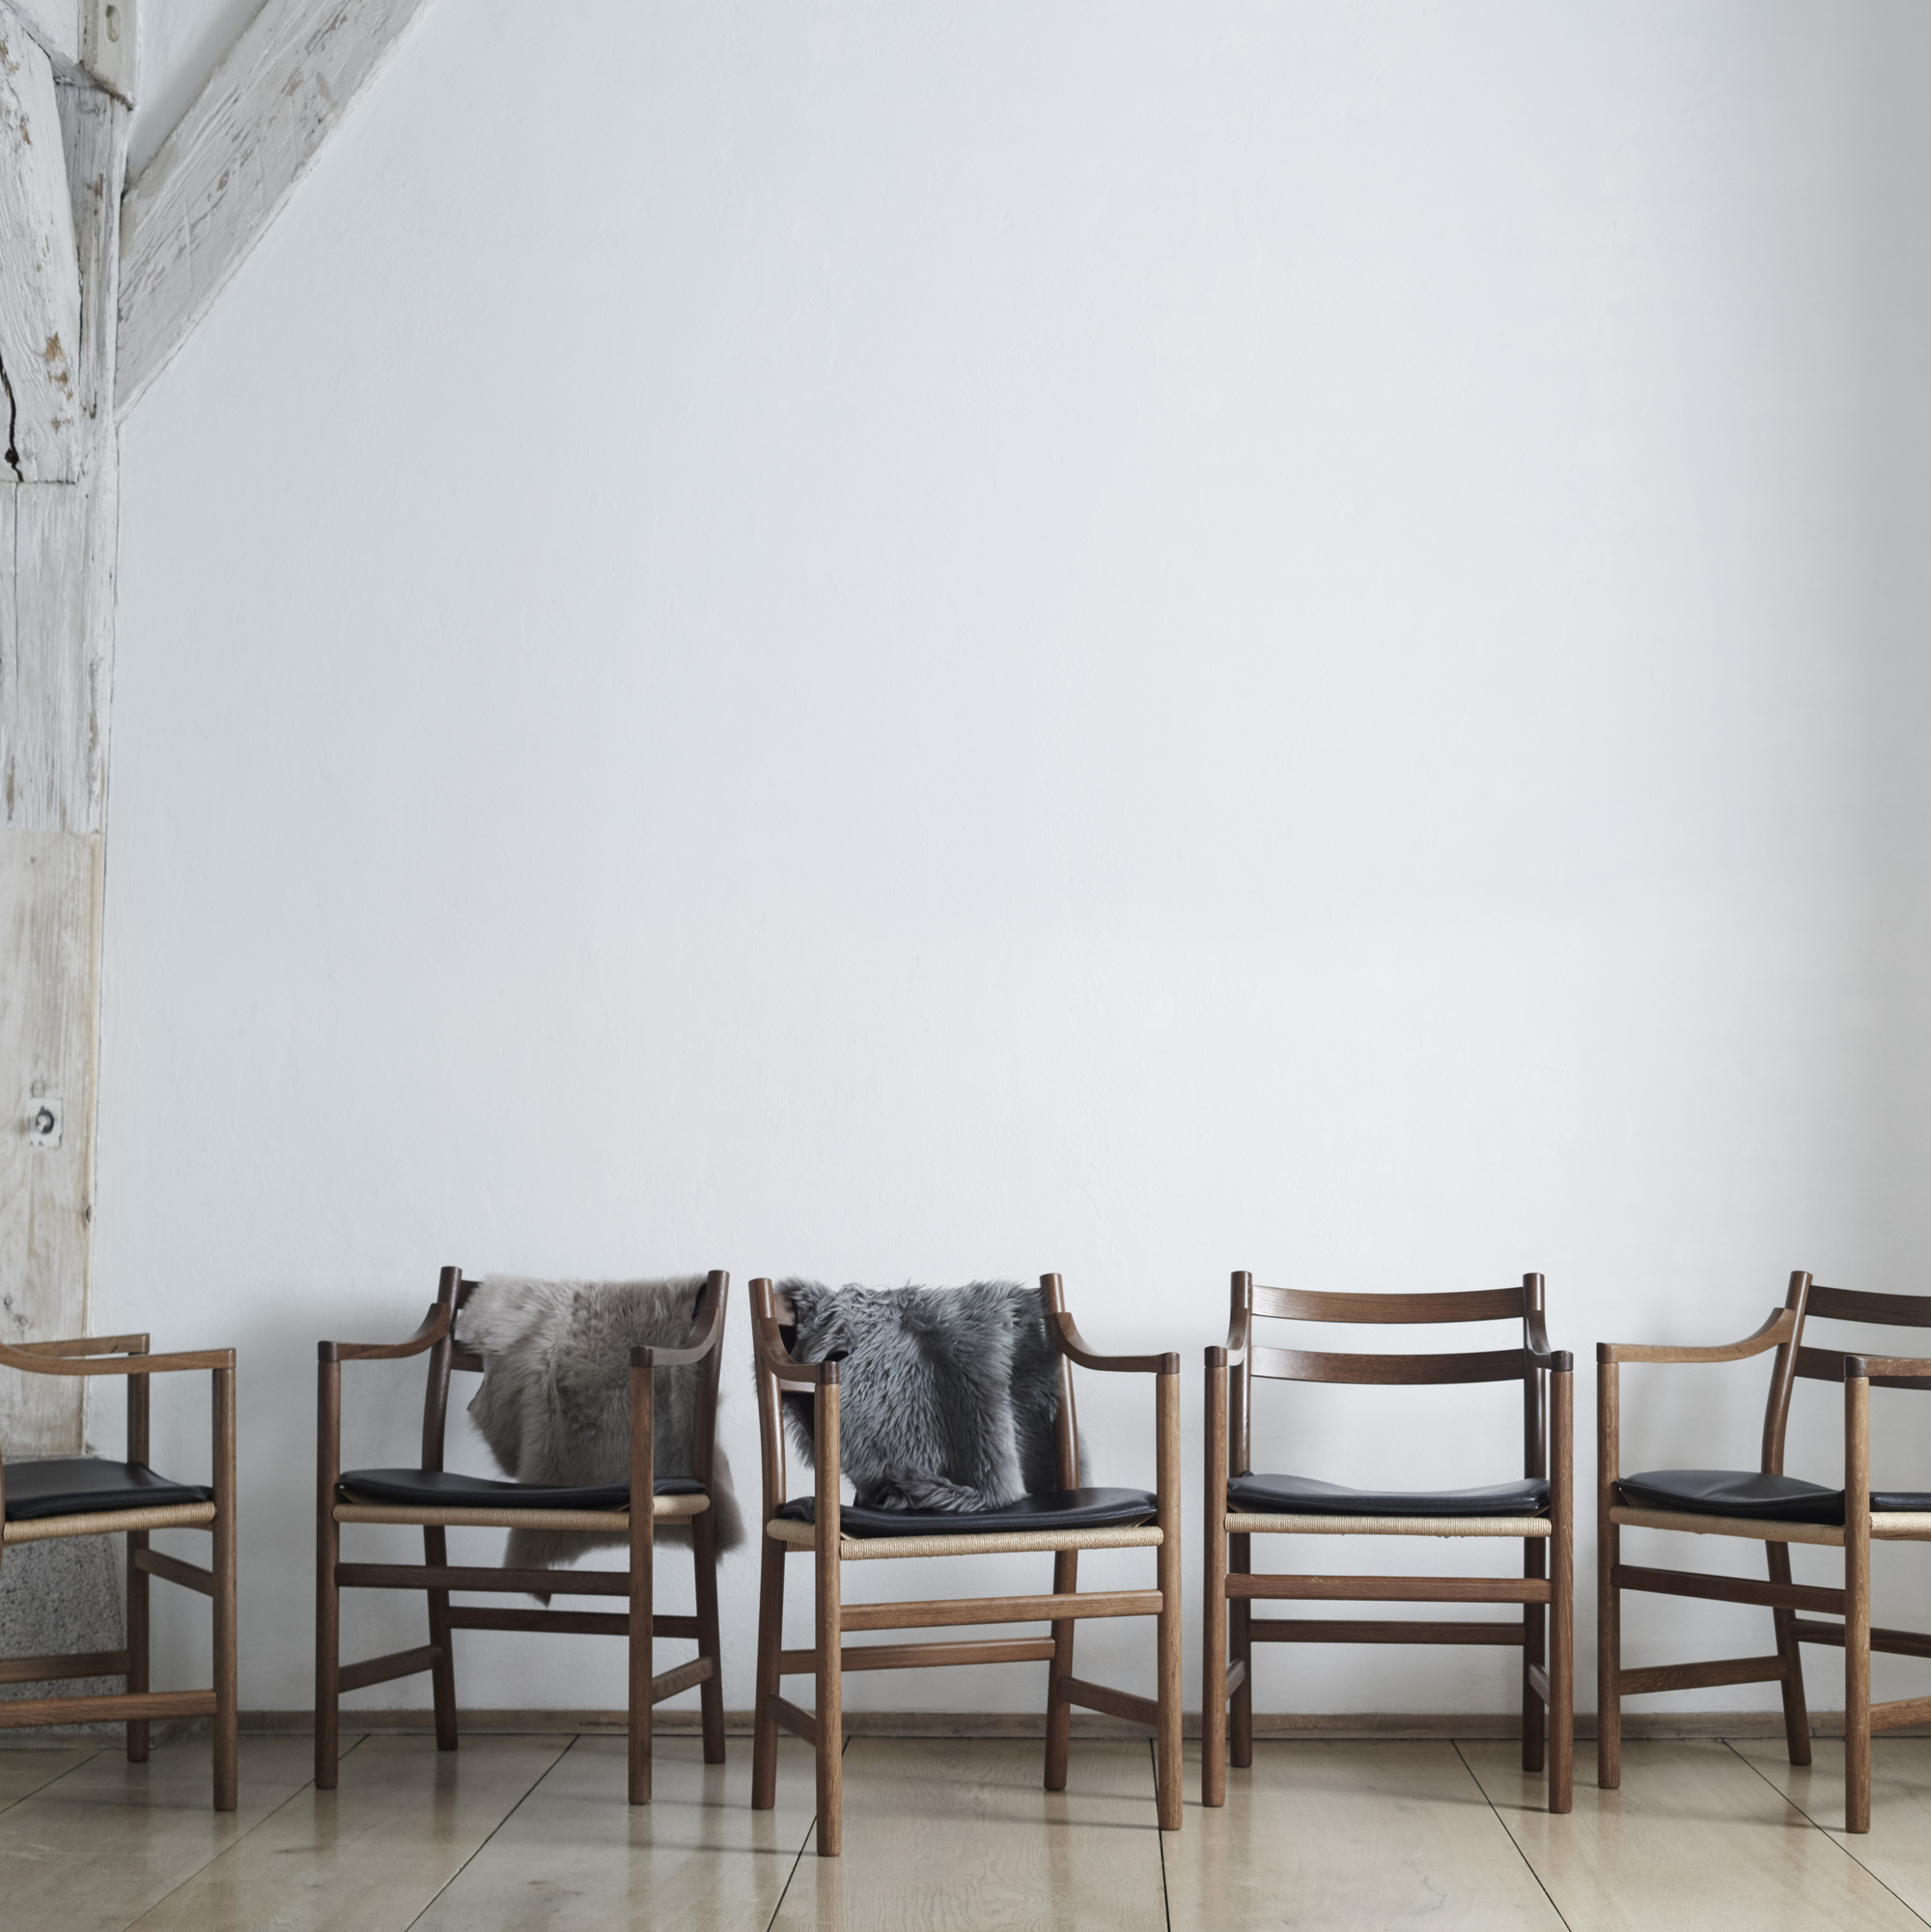 193 Hans J Wegner Dining Chairs From The Private Room Set